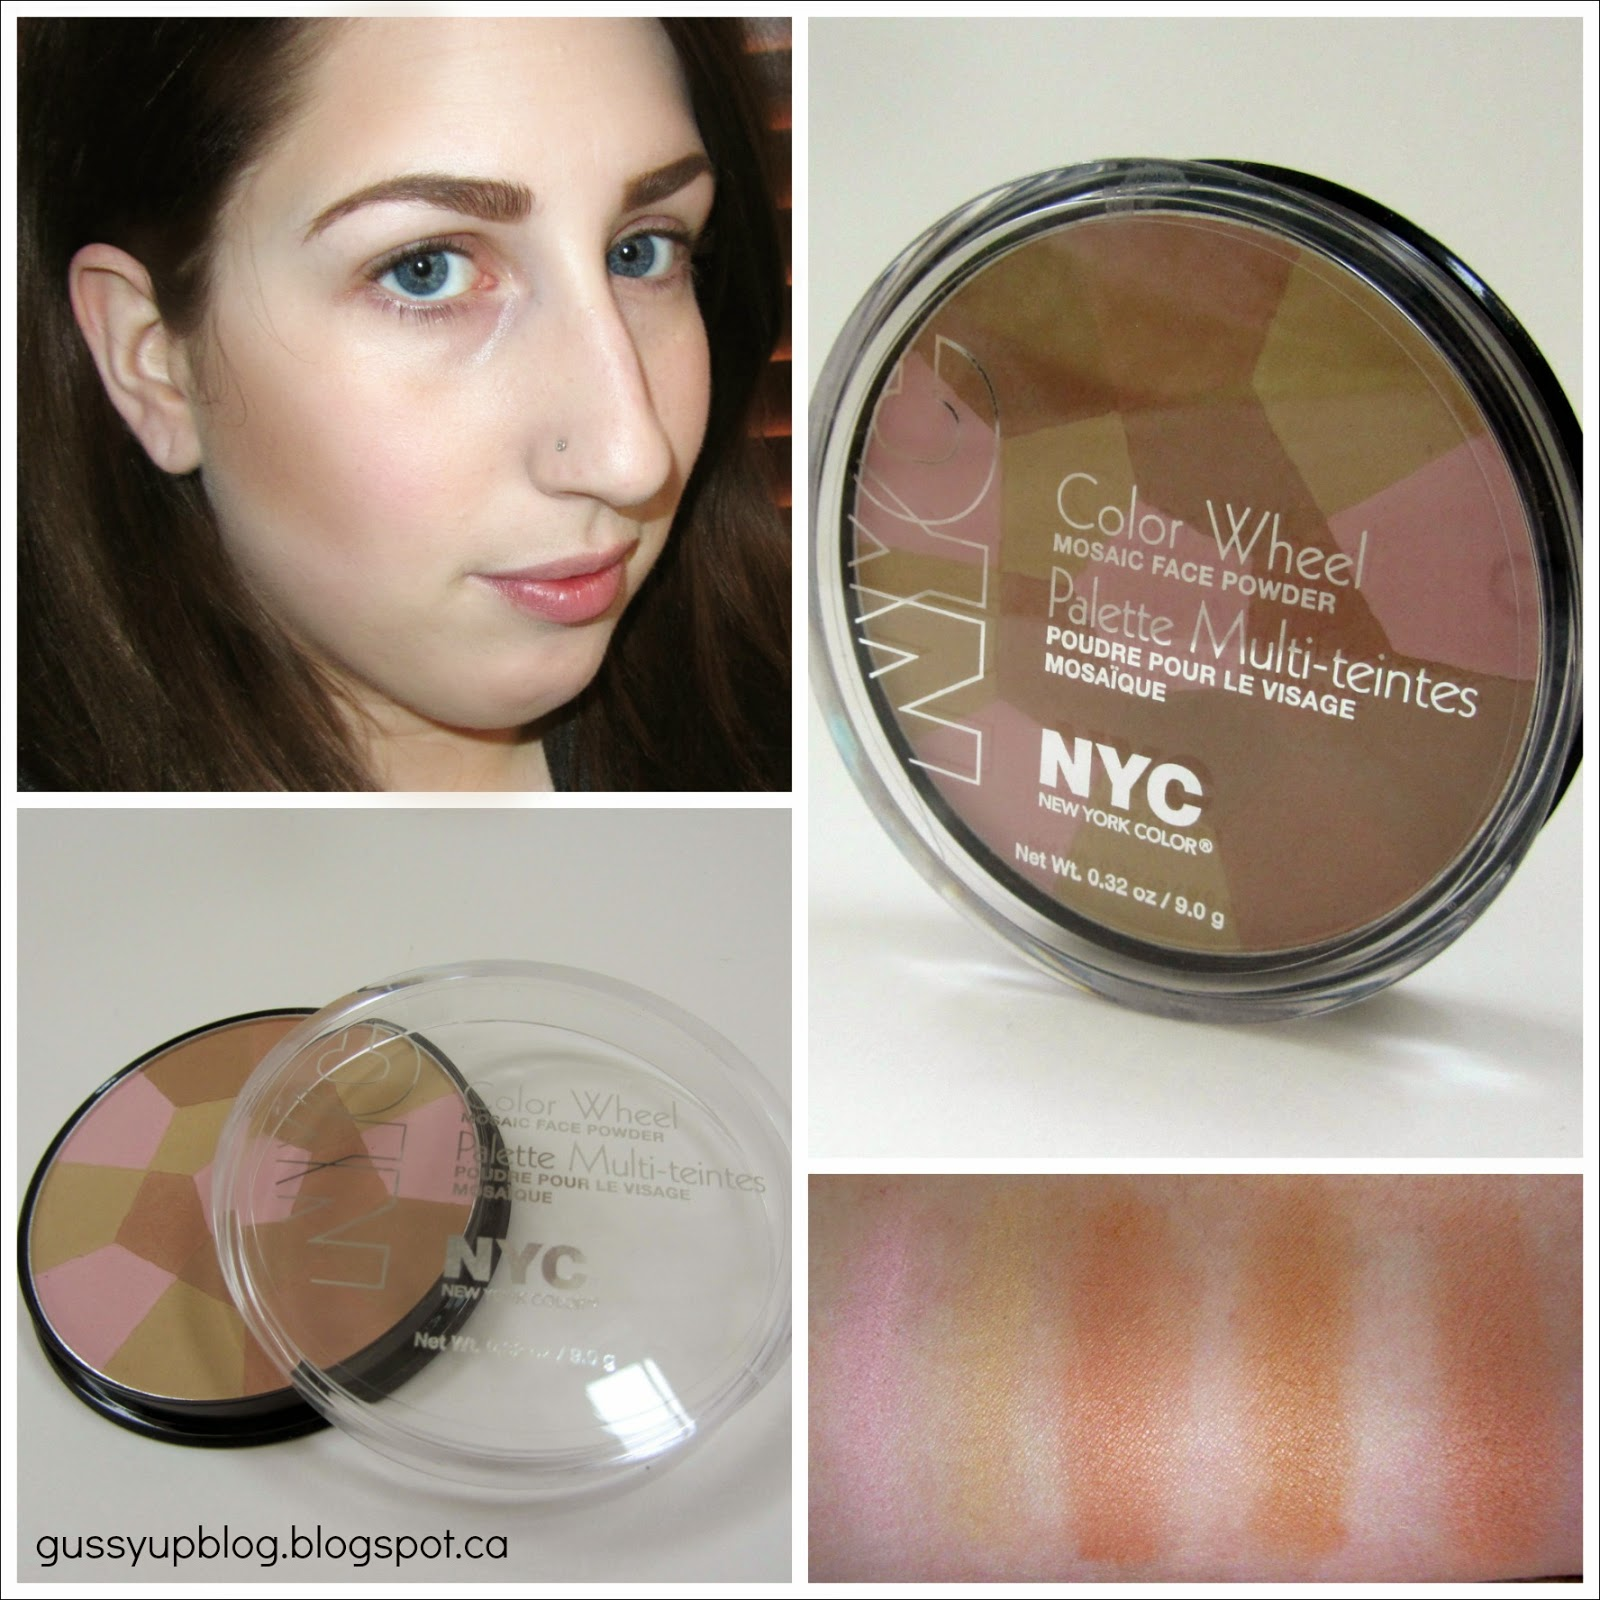 NYC Color Wheel Mosaic Face Powder, No. 726 Bronzed Pink, Review and Swatches